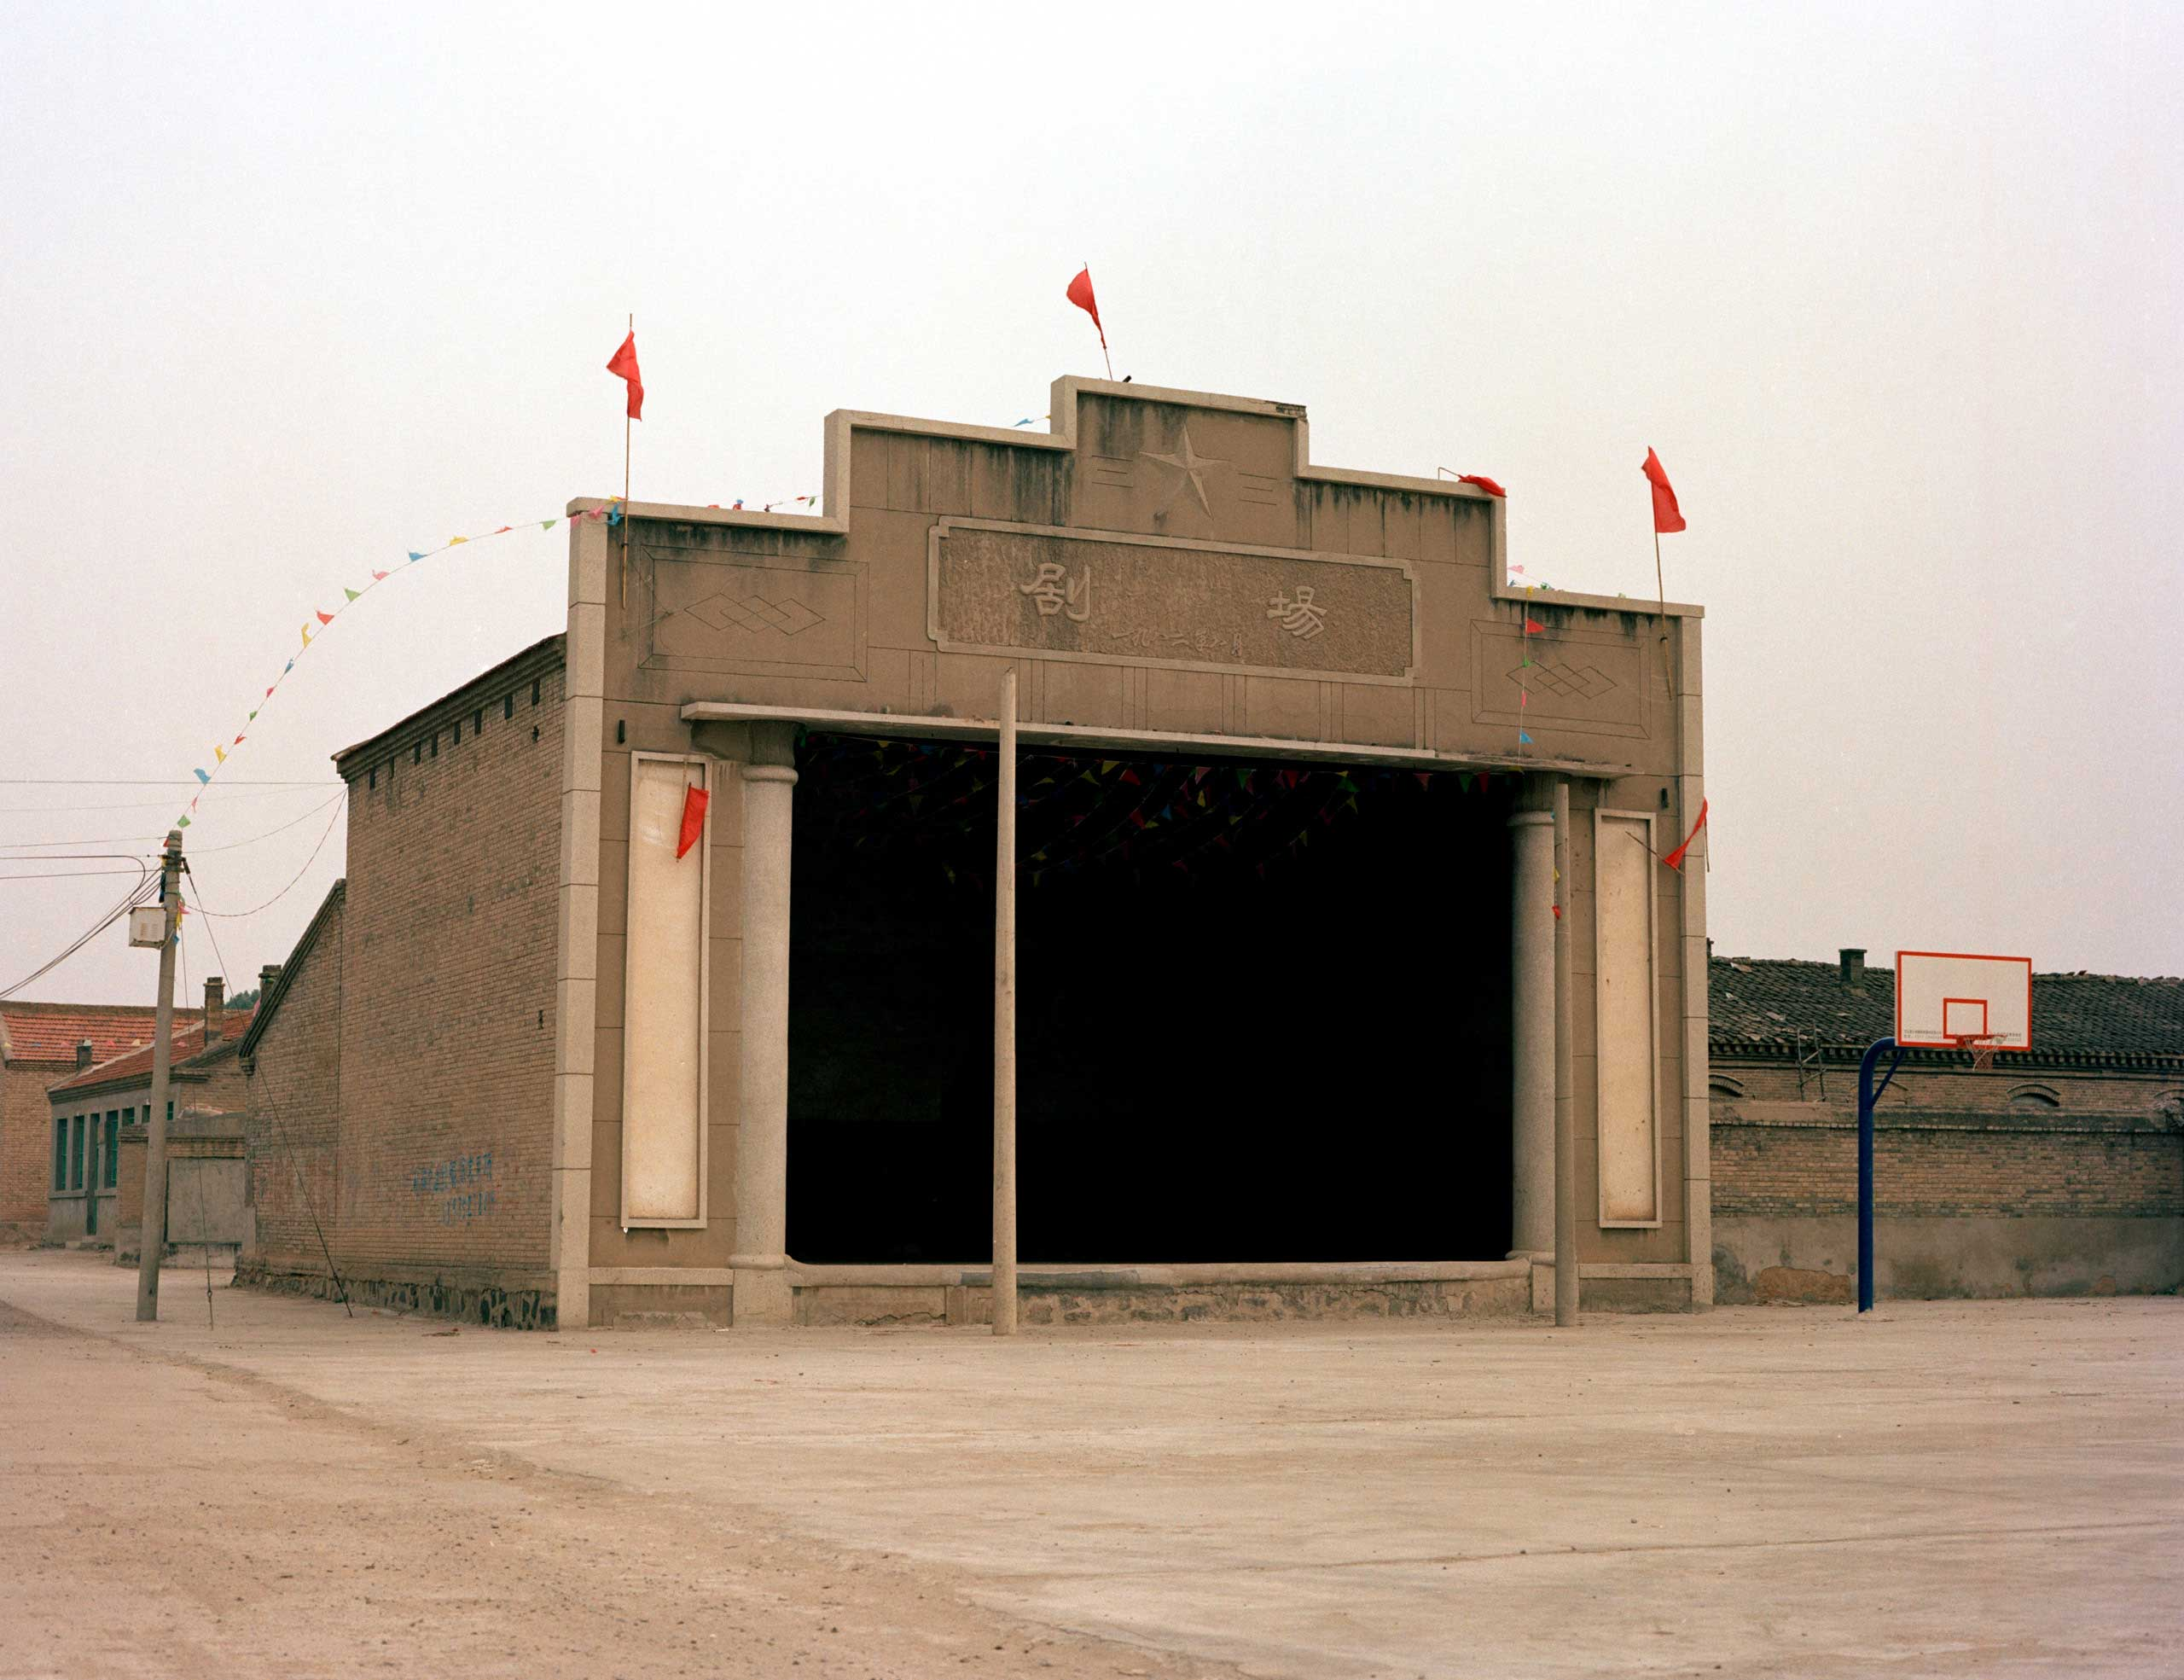 An abandoned theater in Polubao, Shanxi Province, China.